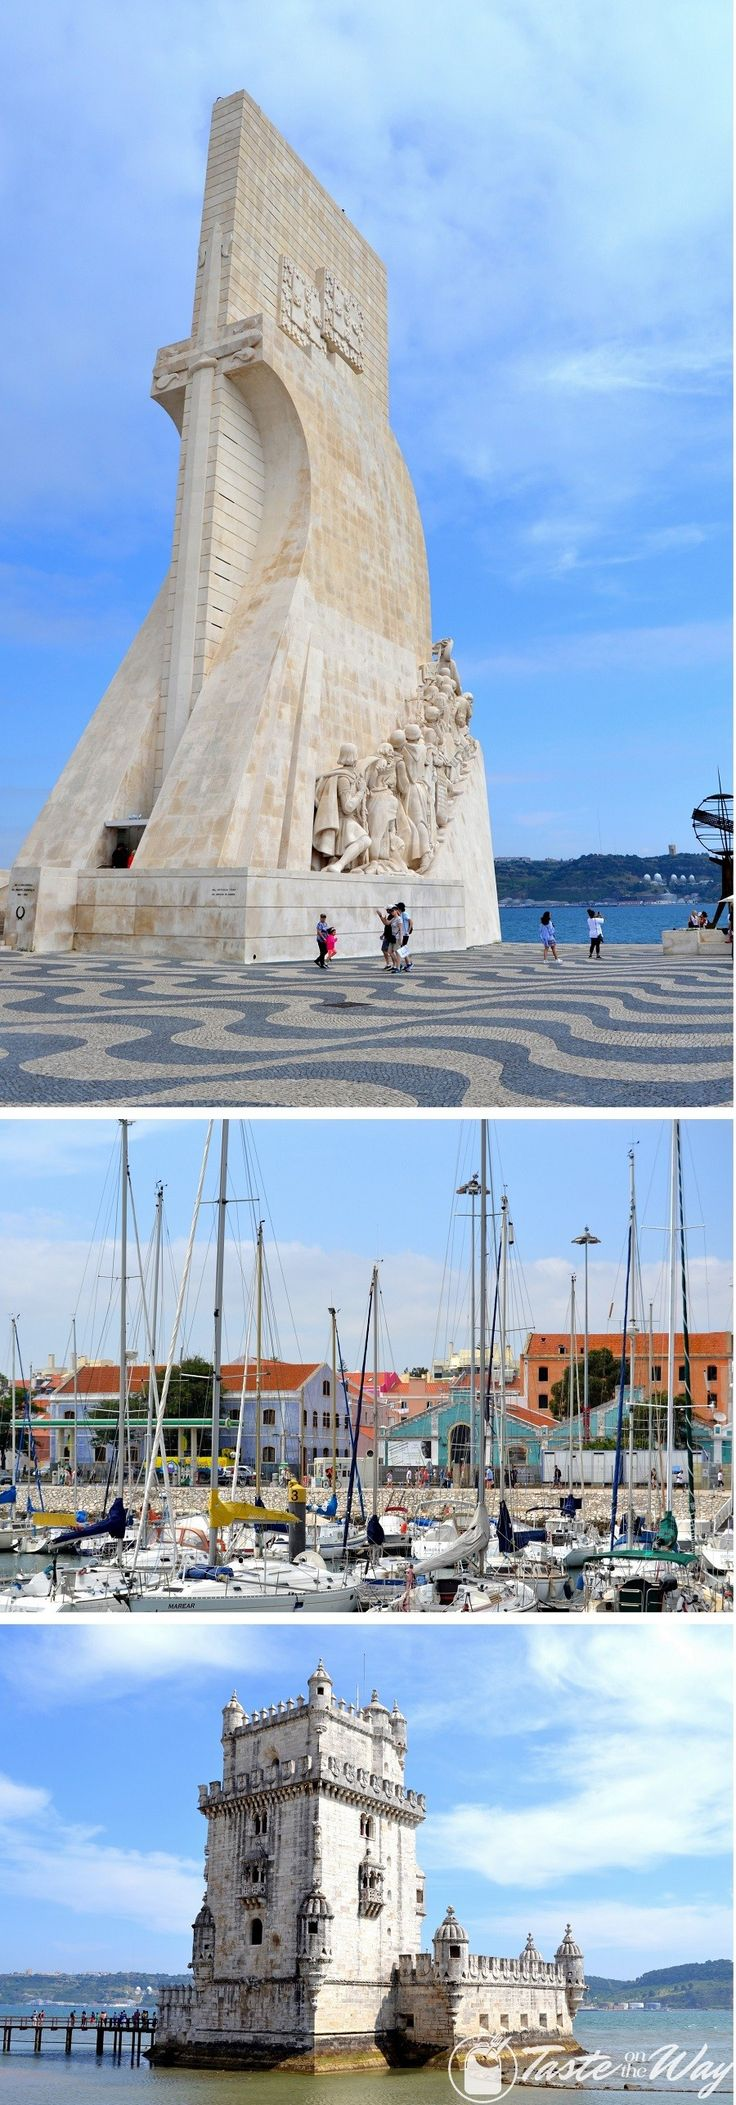 Check out our travel story about the Belem Tower in Lisbon with pictures @tasteontheway